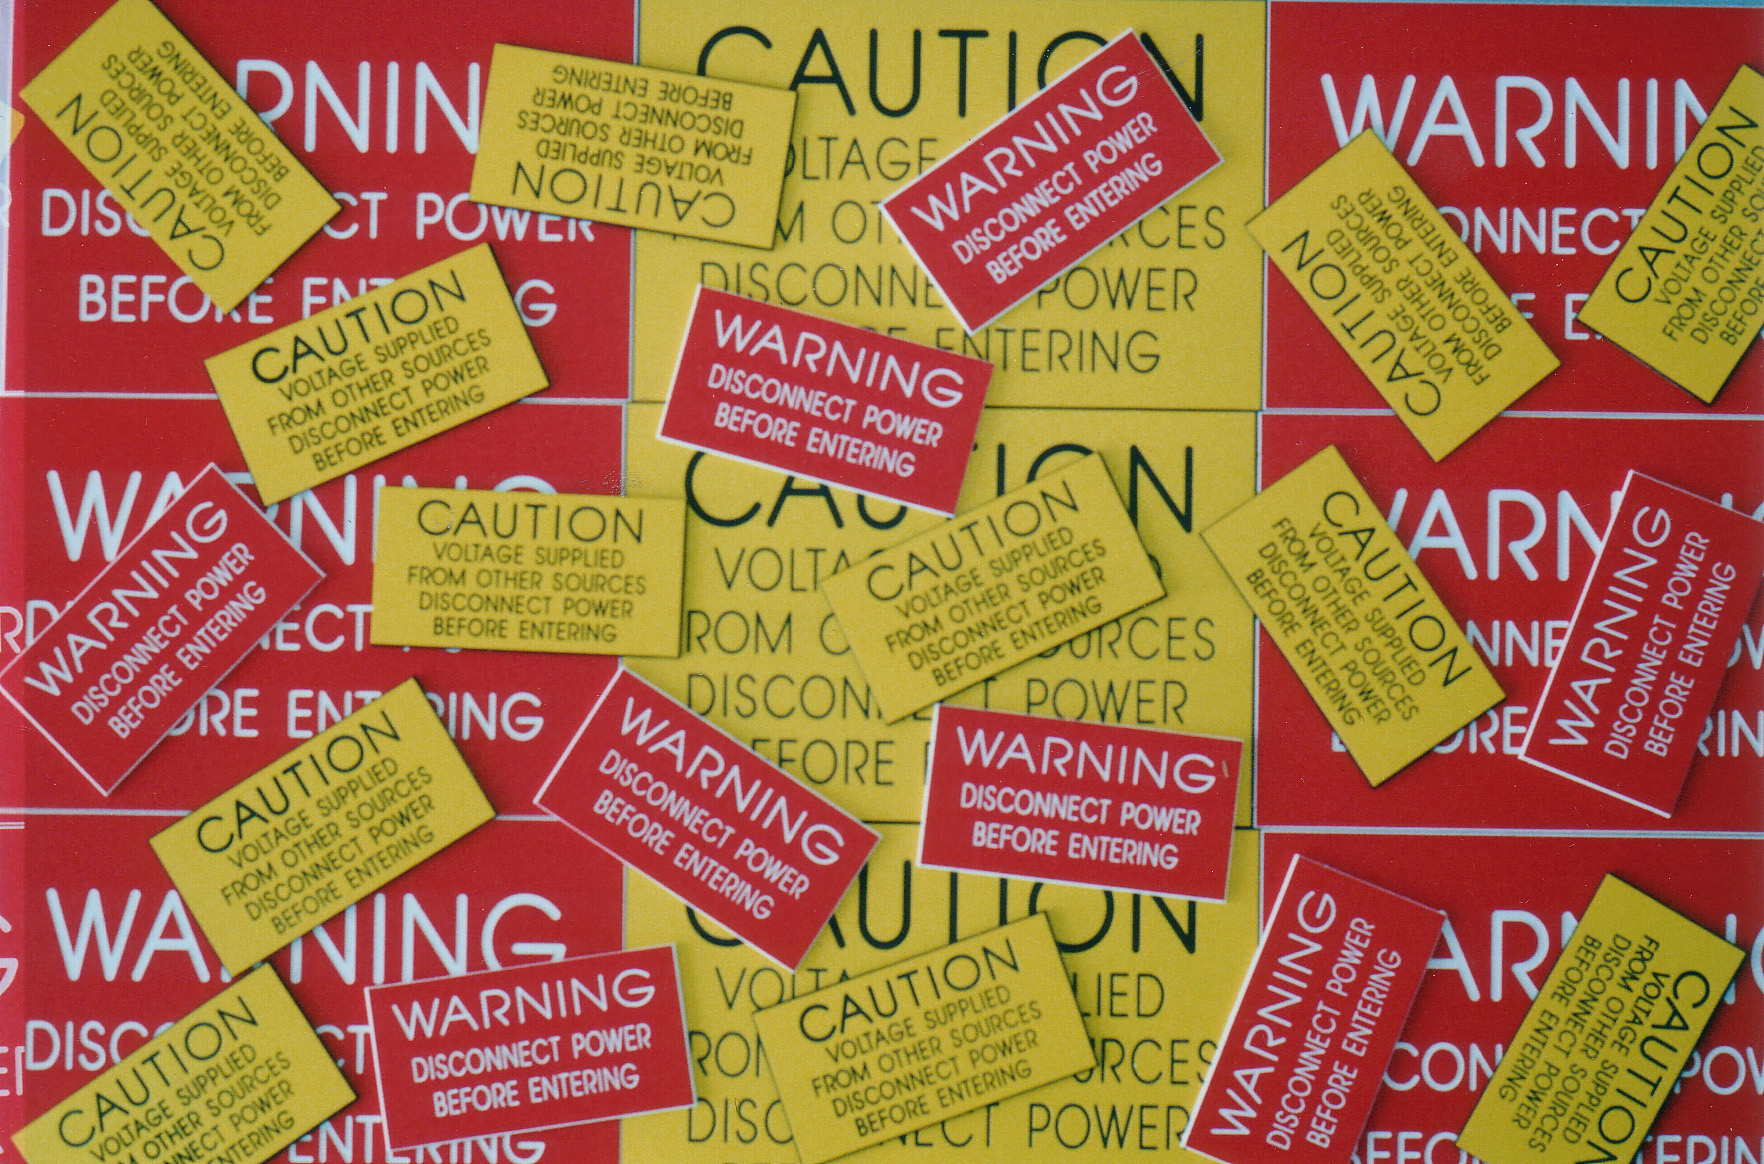 Caution and Warning Labels